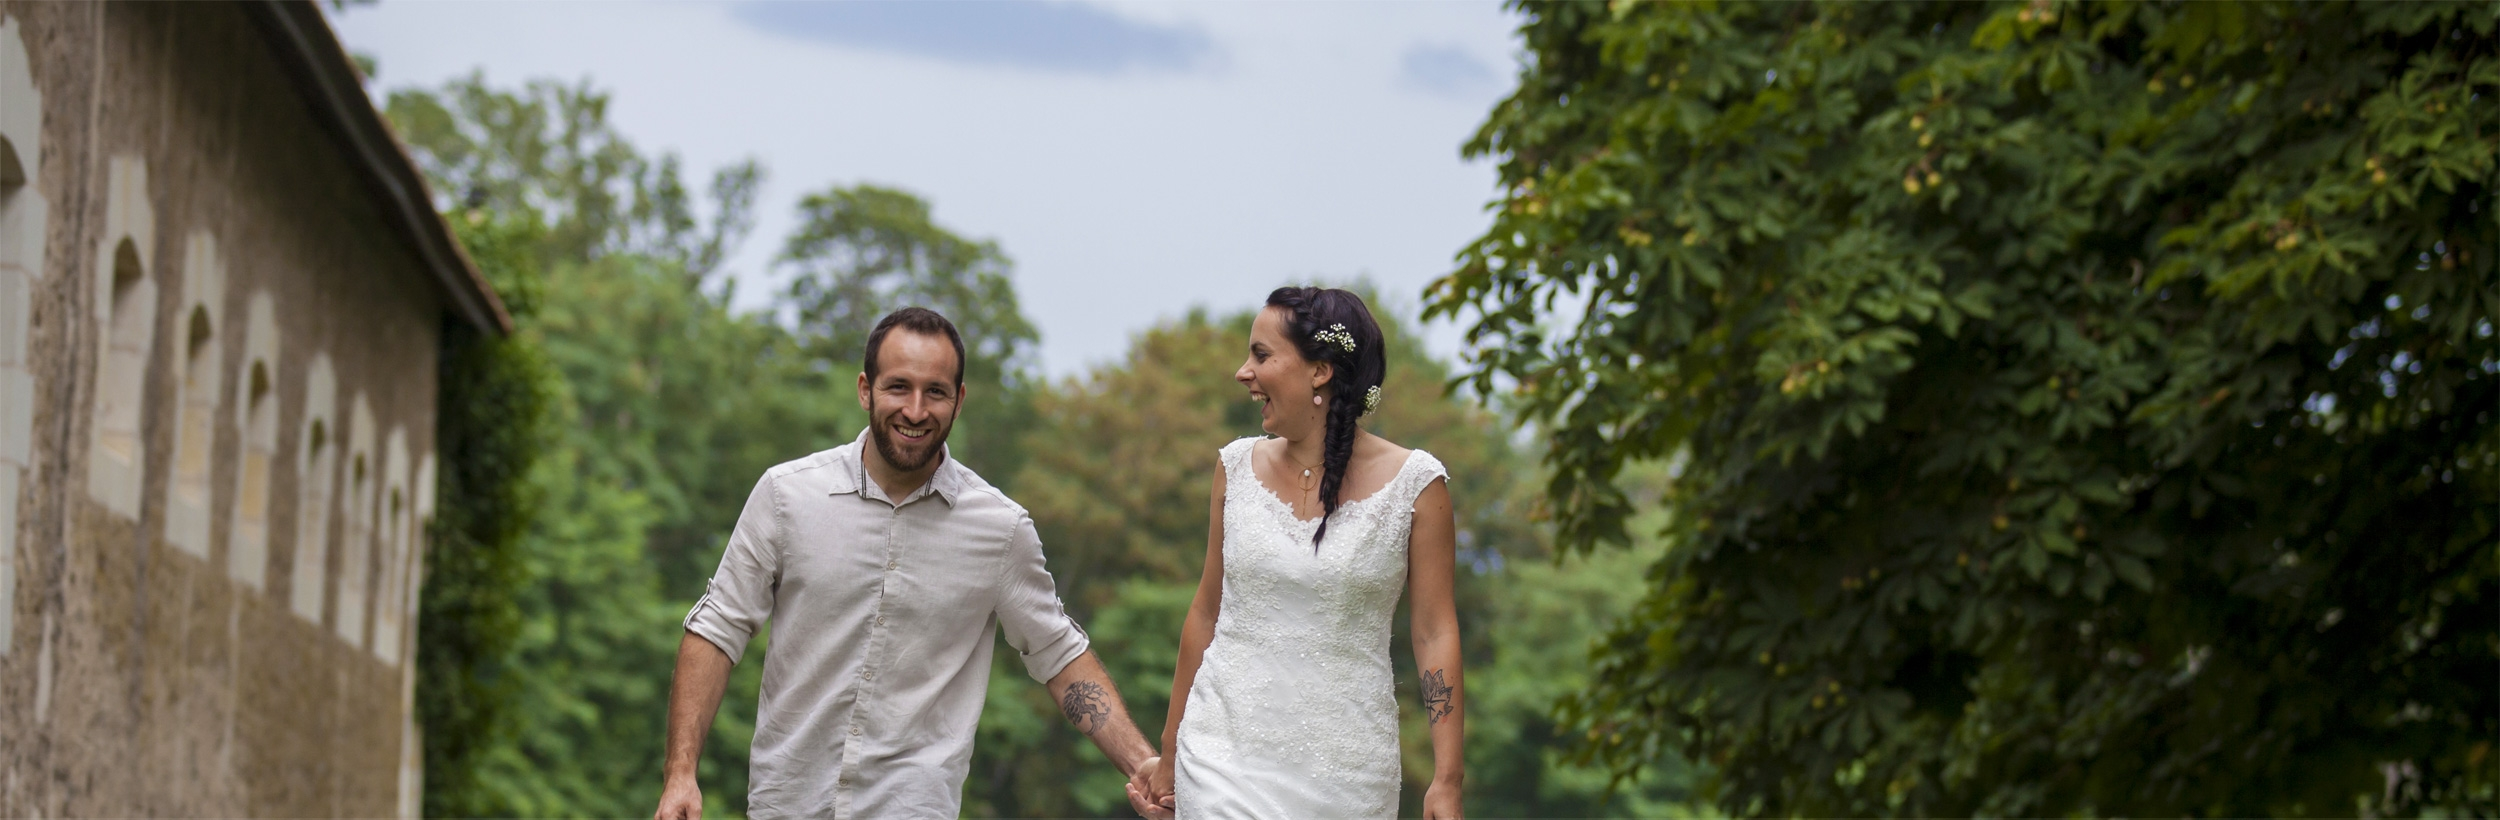 particuliers-evenements-mariage-oui-carla&jeremy-pagetop